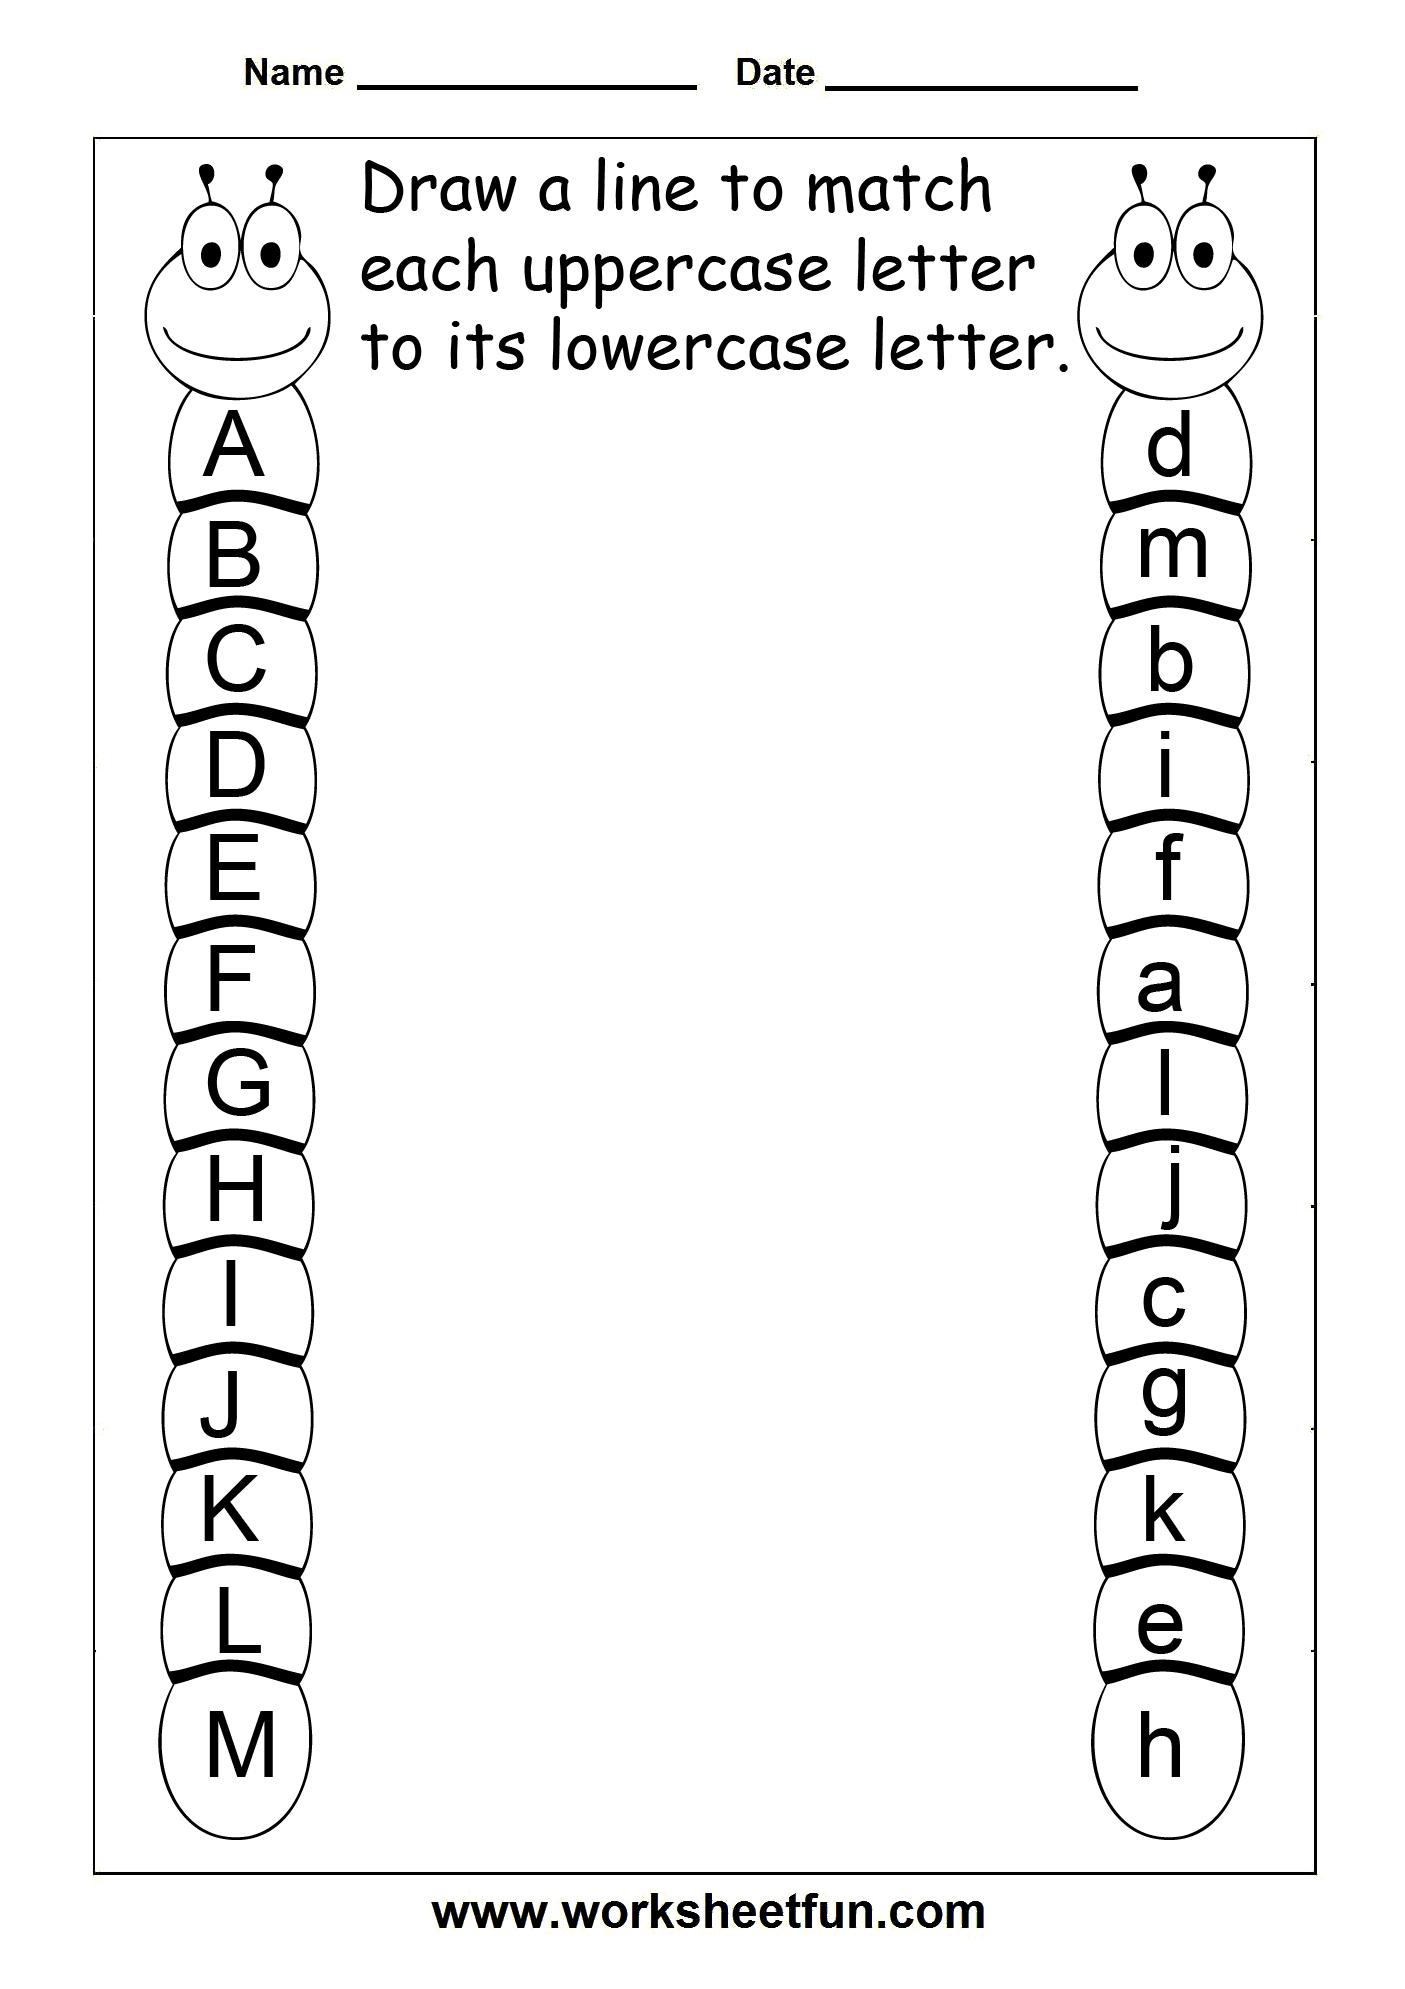 Weirdmailus  Gorgeous  Images About Work Worksheet On Pinterest  Hidden Pictures  With Extraordinary  Images About Work Worksheet On Pinterest  Hidden Pictures Color By Numbers And Puzzles With Extraordinary Two Times Table Worksheets Also Free Tens And Ones Worksheets In Addition Short Vowel U Worksheet And Partitioning Worksheets Ks As Well As Simple Equivalent Fractions Worksheets Additionally Free Grammar Worksheets For High School From Pinterestcom With Weirdmailus  Extraordinary  Images About Work Worksheet On Pinterest  Hidden Pictures  With Extraordinary  Images About Work Worksheet On Pinterest  Hidden Pictures Color By Numbers And Puzzles And Gorgeous Two Times Table Worksheets Also Free Tens And Ones Worksheets In Addition Short Vowel U Worksheet From Pinterestcom